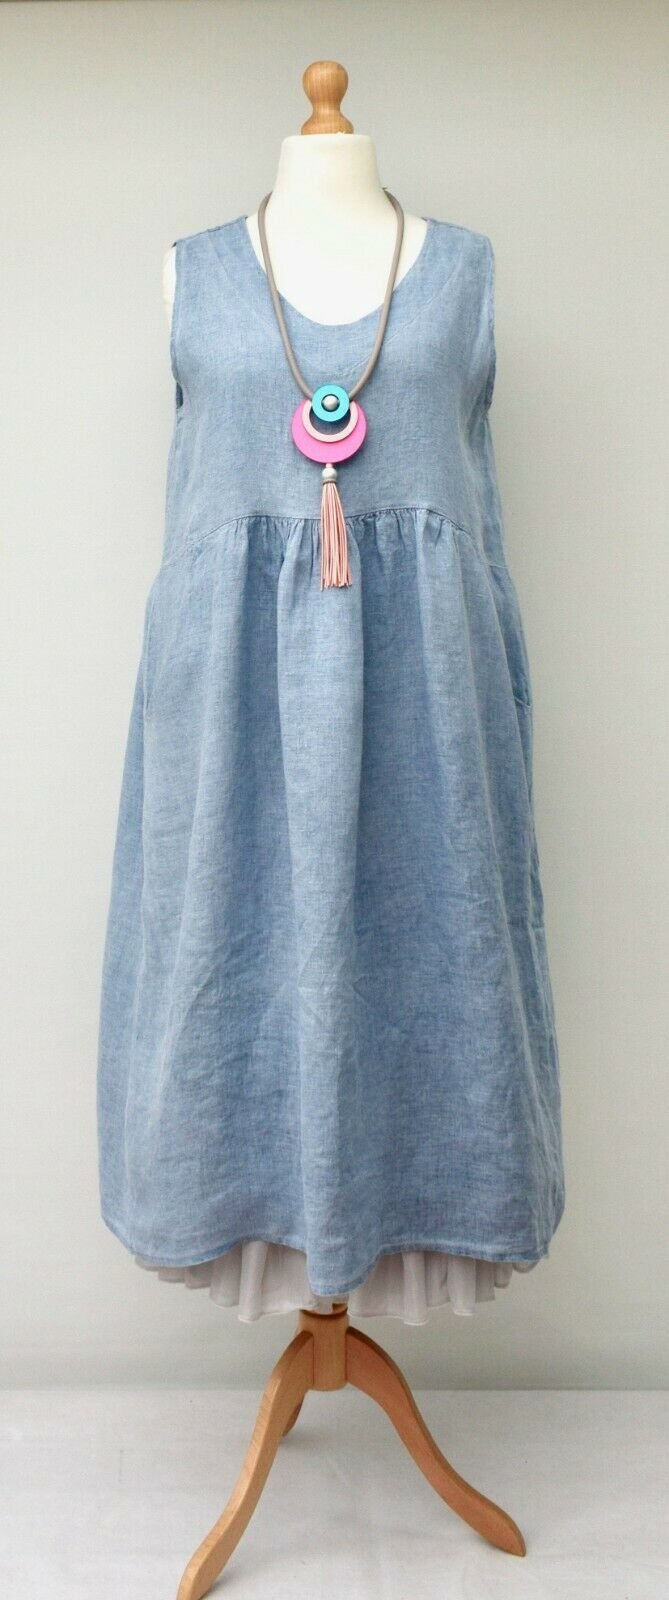 "LAGENLOOK LINEN OVERSIZED PLAIN 2 POCKETS LONG DRESS**BLUE**BUST UP TO 46"" ITALY"